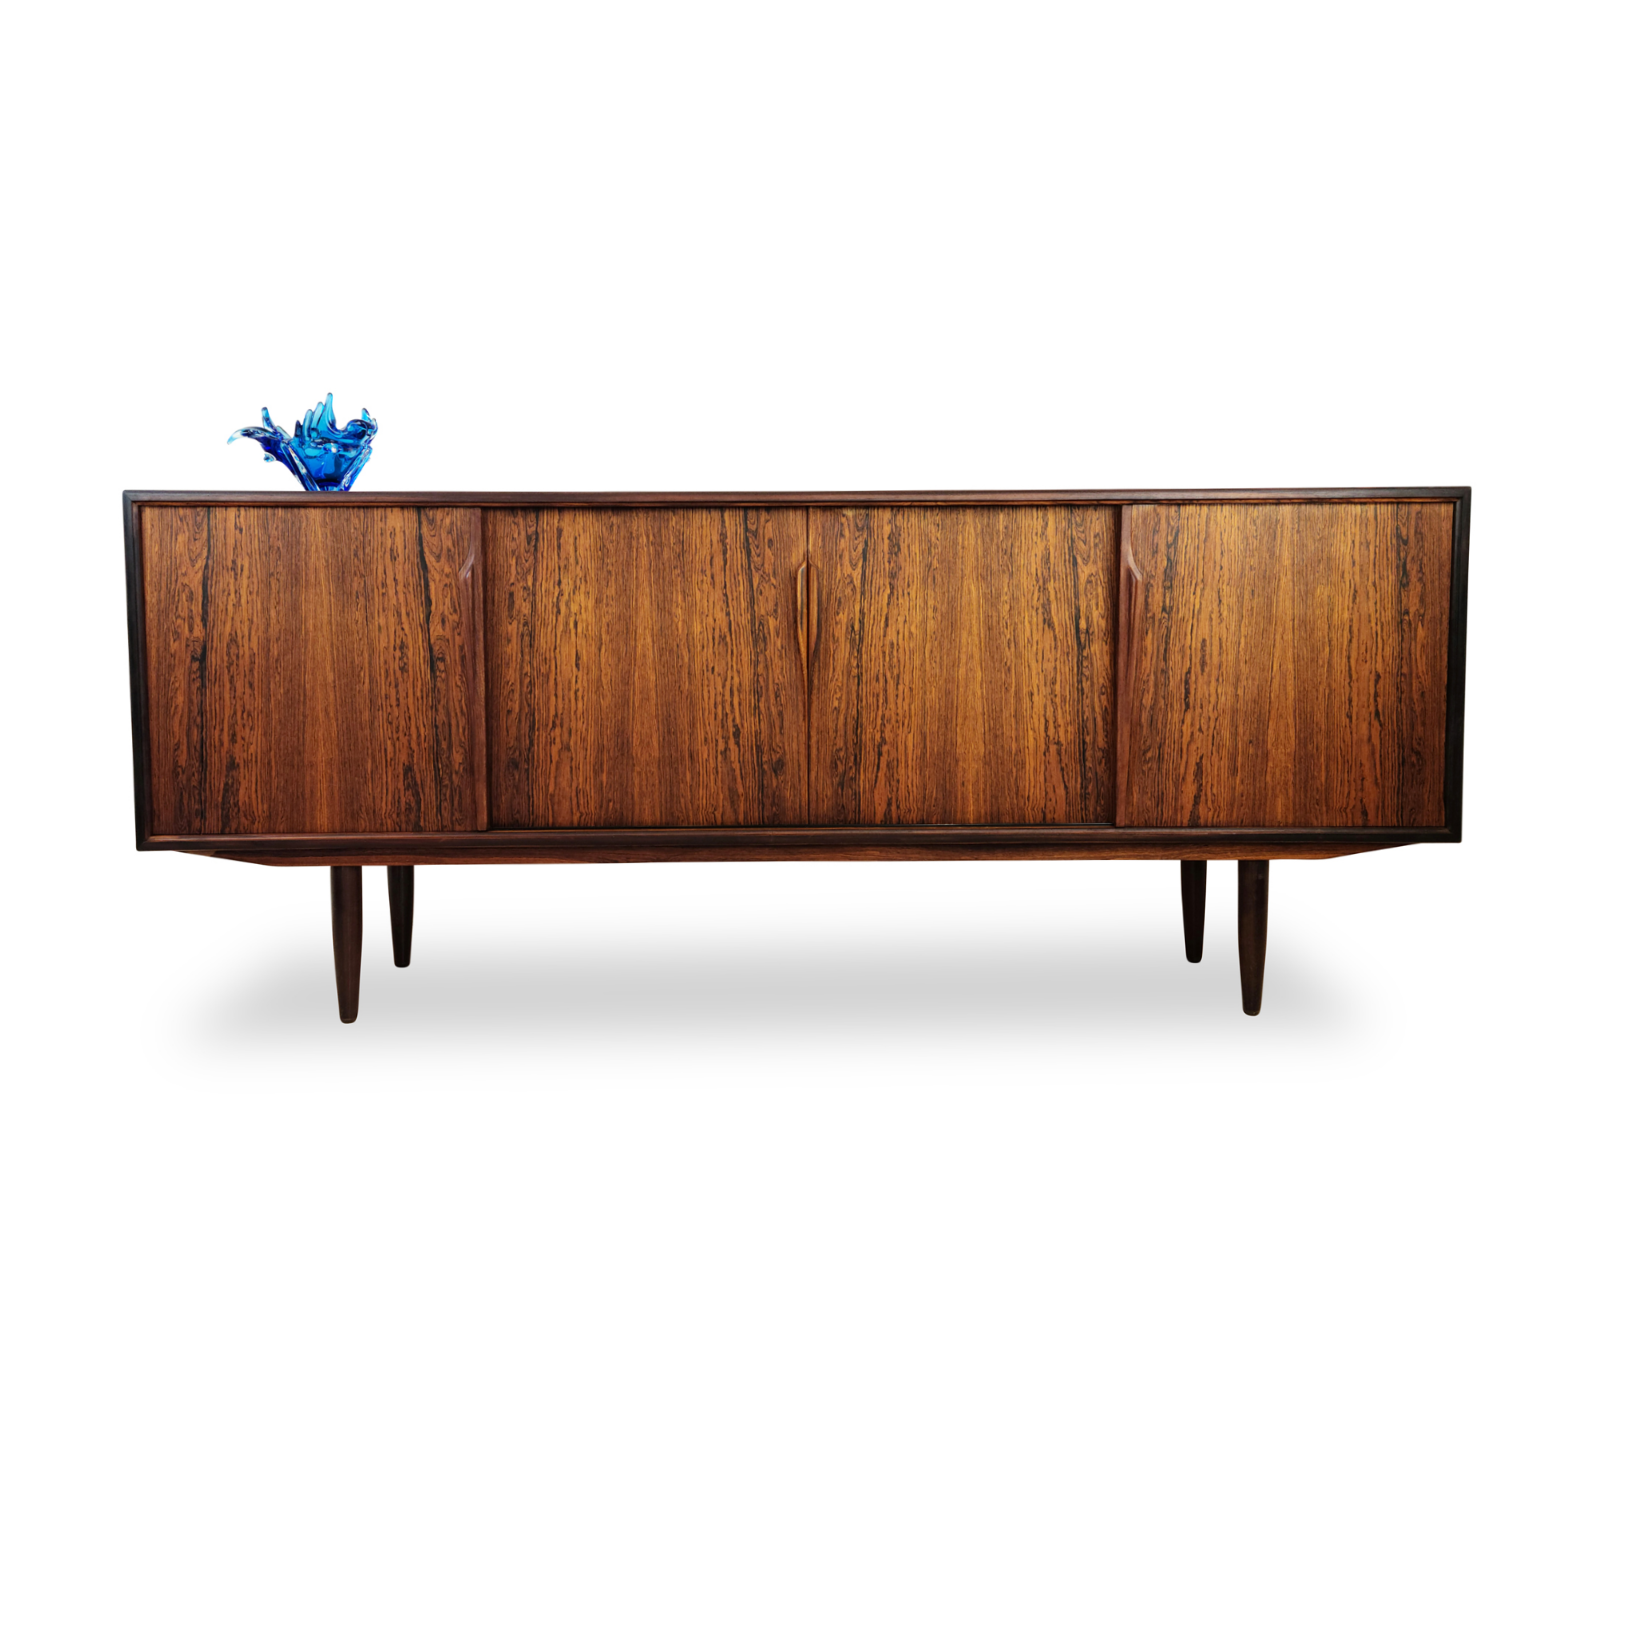 Rosewood Sideboard by Gunni Omann for Axel Christiansen